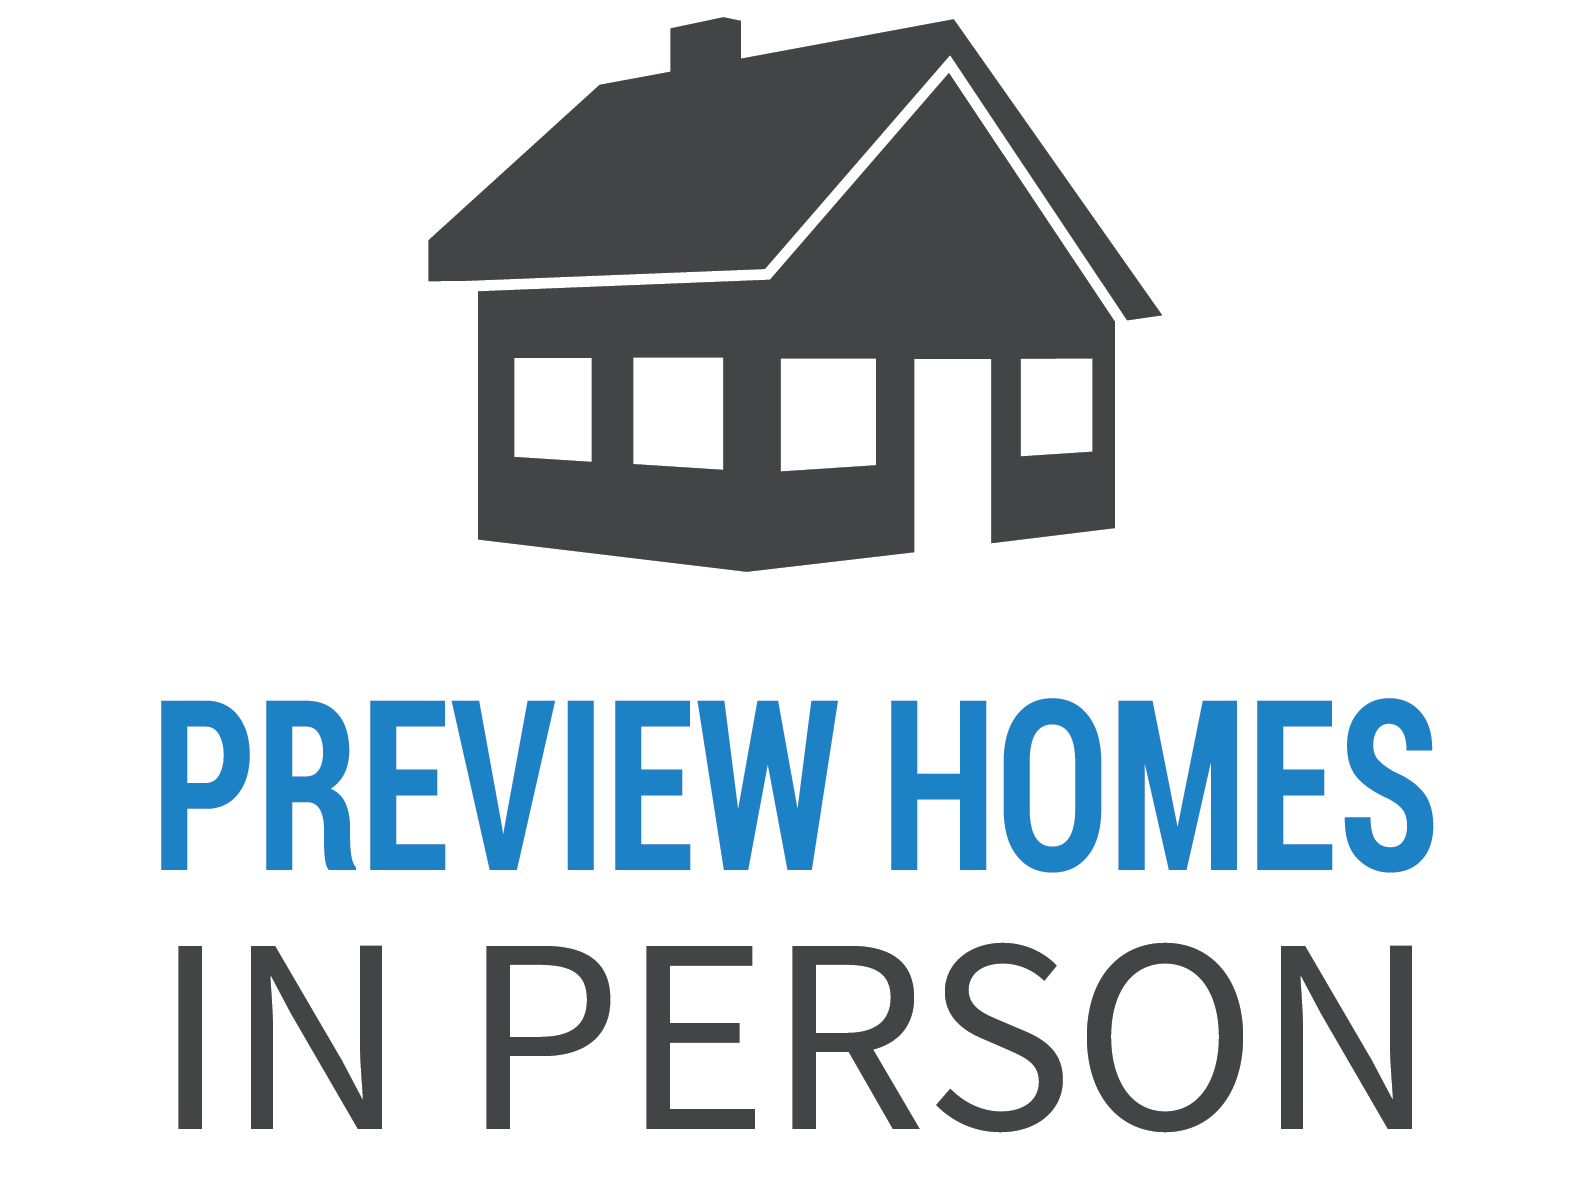 Preview Homes in Person